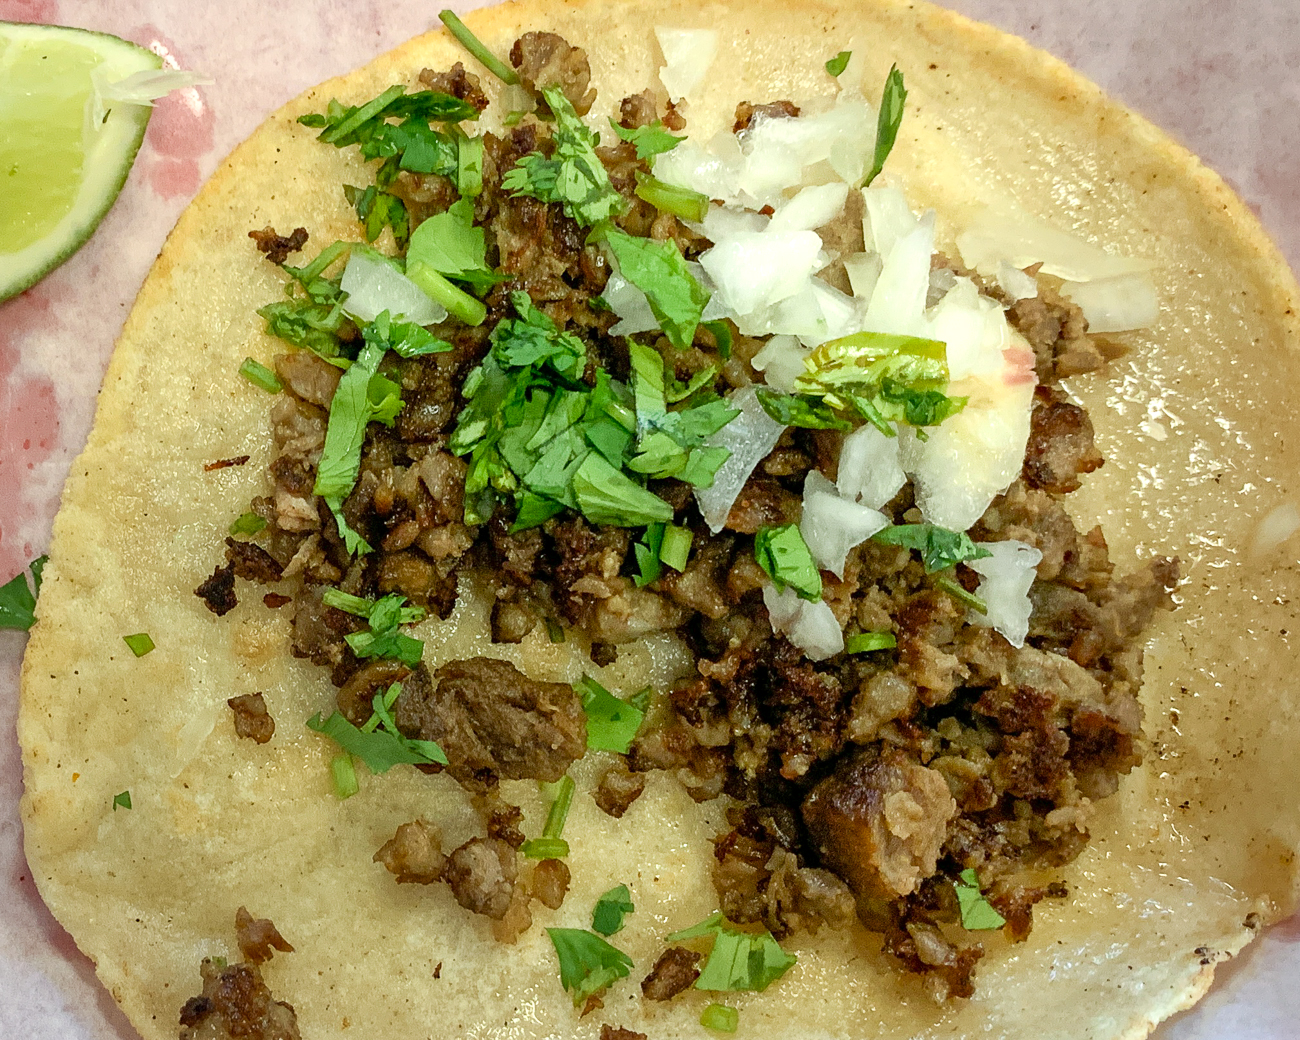 PLACE: Taqueria Cruz / ADDRESS: 518 W. Pike Street (Covington) / DESCRIPTION: This place is a hole in the wall restaurant if there ever was one, and I mean that as a huge compliment. Taqueria Cruz is tightly squeezed between a Sunoco and a laundromat on the outskirts of Covington (also, only a few blocks from Gutierrez, in the event you want to do a twofer) and features a good array of meats on its small menu. Cruz is similar to Gutierrez in that the taco is minimalist with just spices, cilantro, onions, and meat. But don't let that minimalism fool you: these tacos are incredible. One thing to keep in mind, they are cash only and there's an ATM at the Sunoco next door. / Image: Shawn Braley // Published: 5.28.19